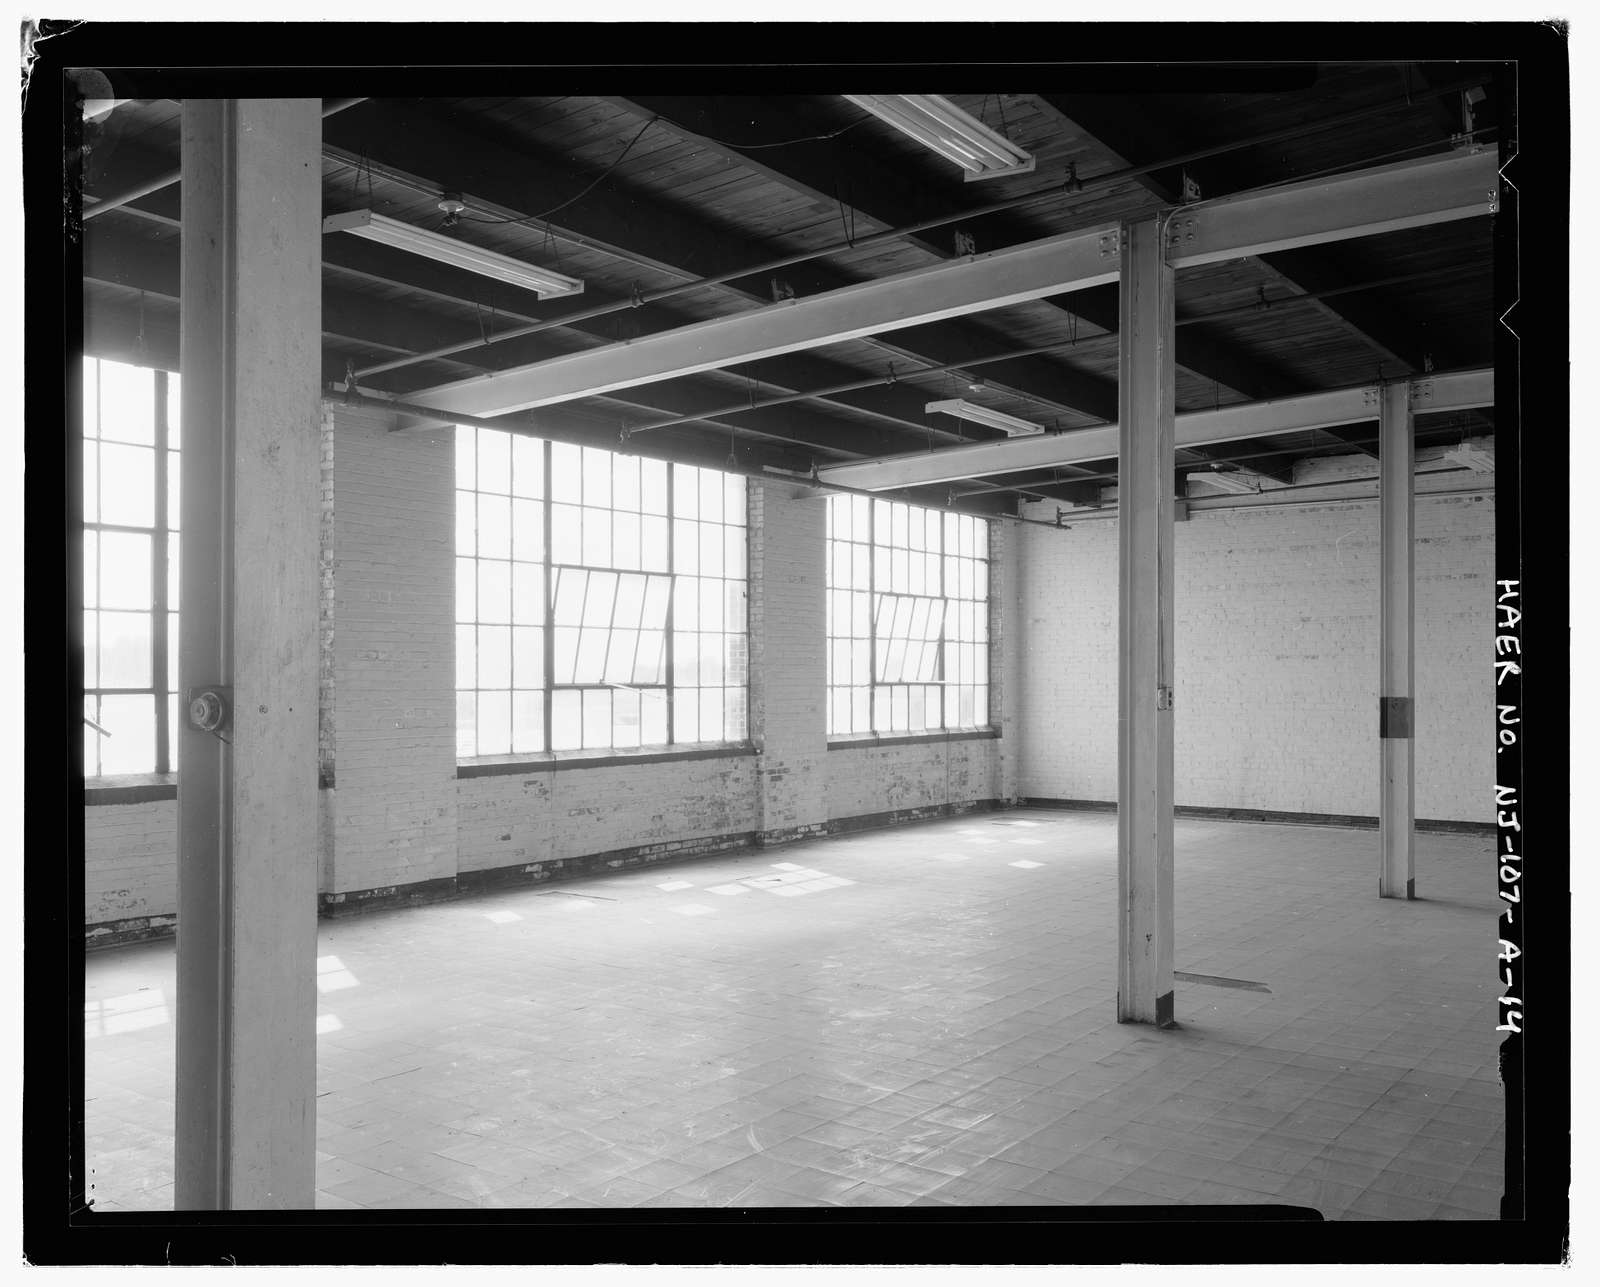 Middlesex Sampling Plant, Process Building, 239 Mountain Avenue, Middlesex, Middlesex County, NJ